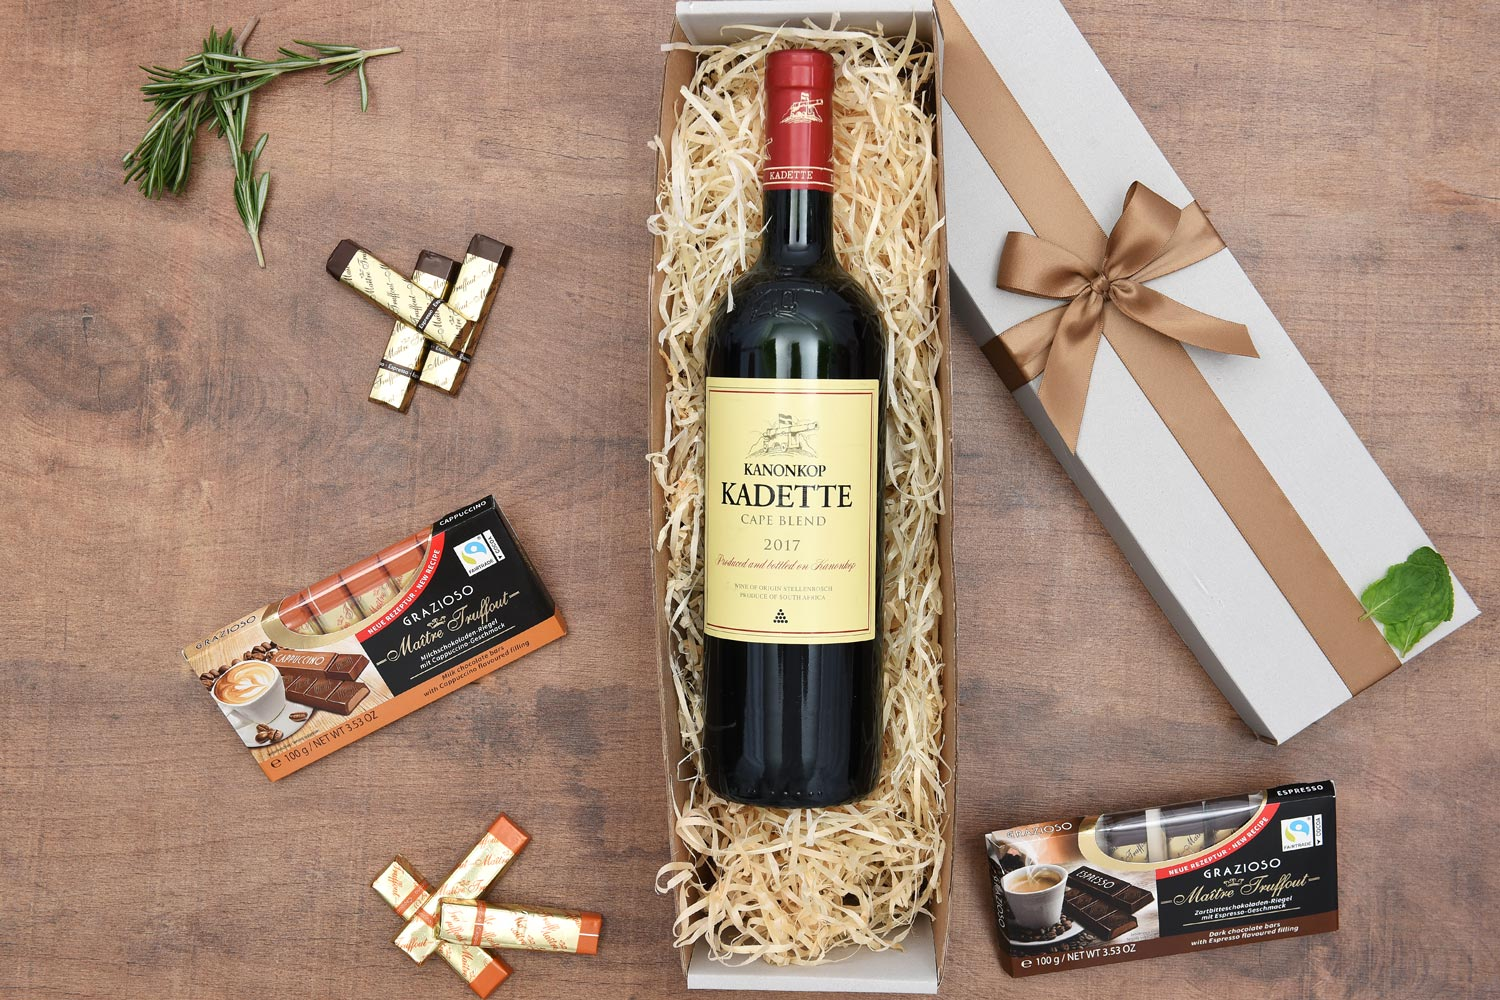 Red Wine Gift Hamper - Kanonkop Kadette & Chocolates | Hamper World